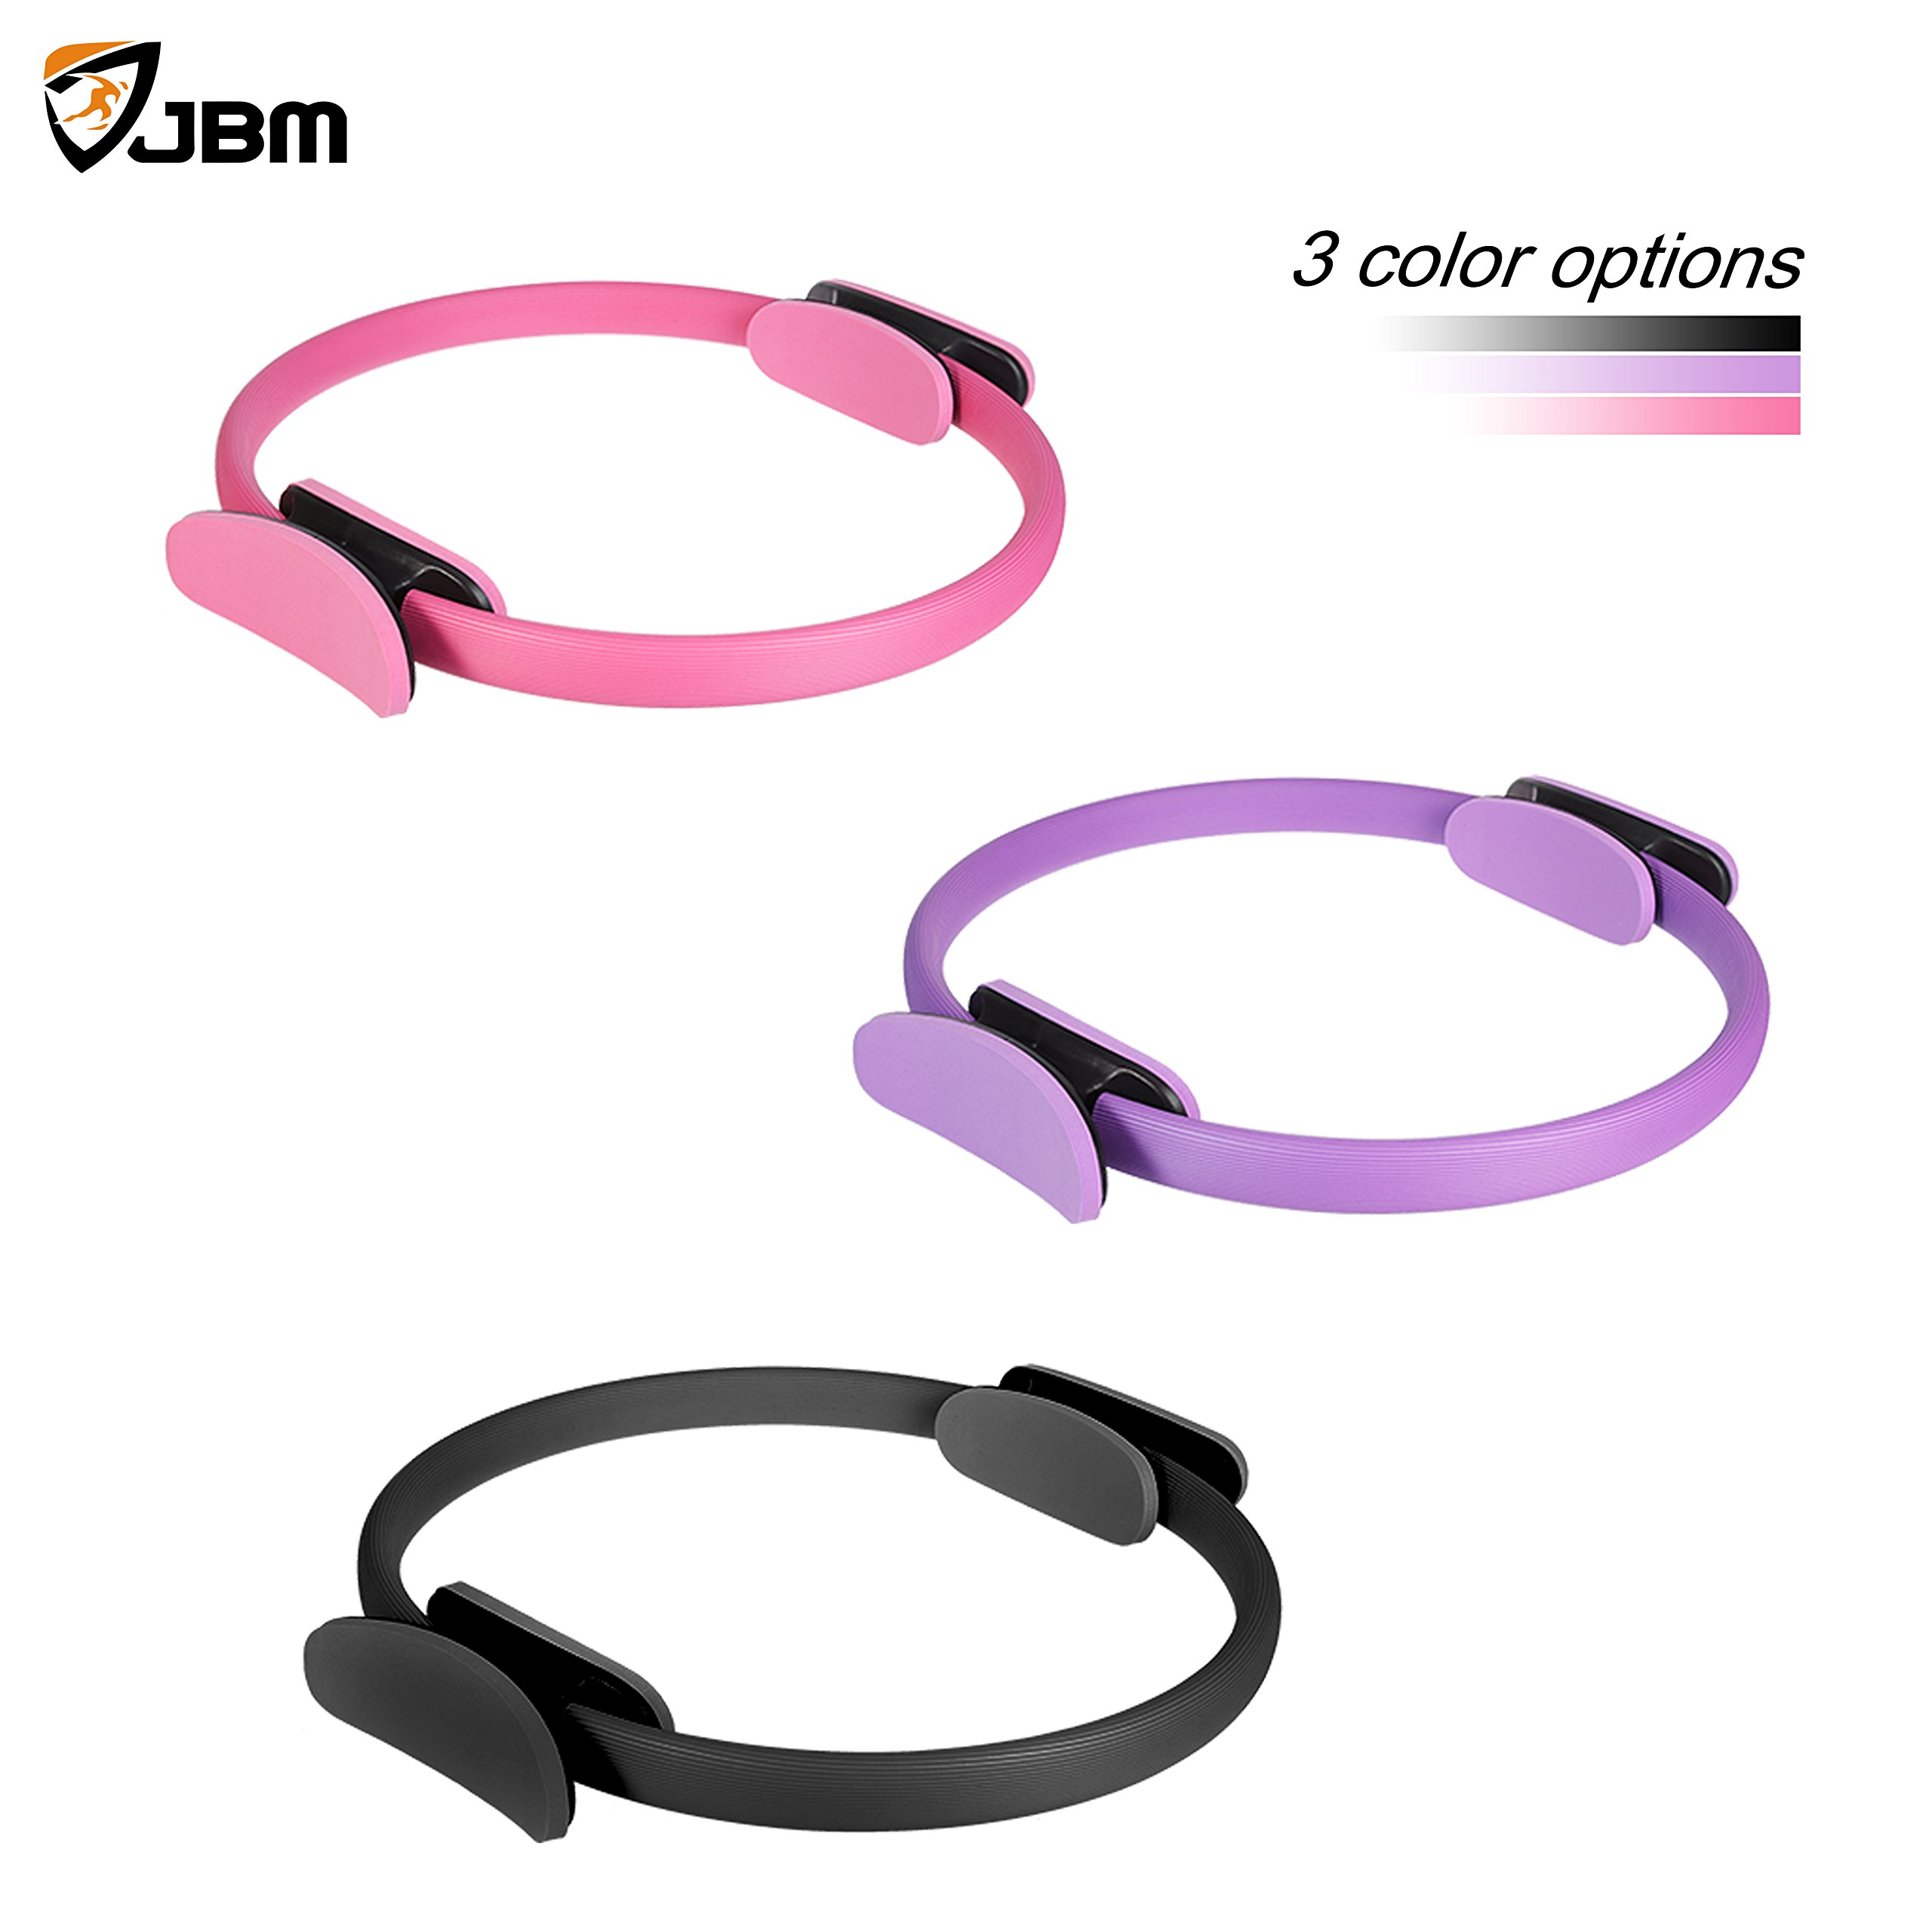 JBM 13 Inch Pilates Ring Fitness Ring, Exercise Yoga Pilates Magic Circle with Dual Grip Handles for Fitness Training